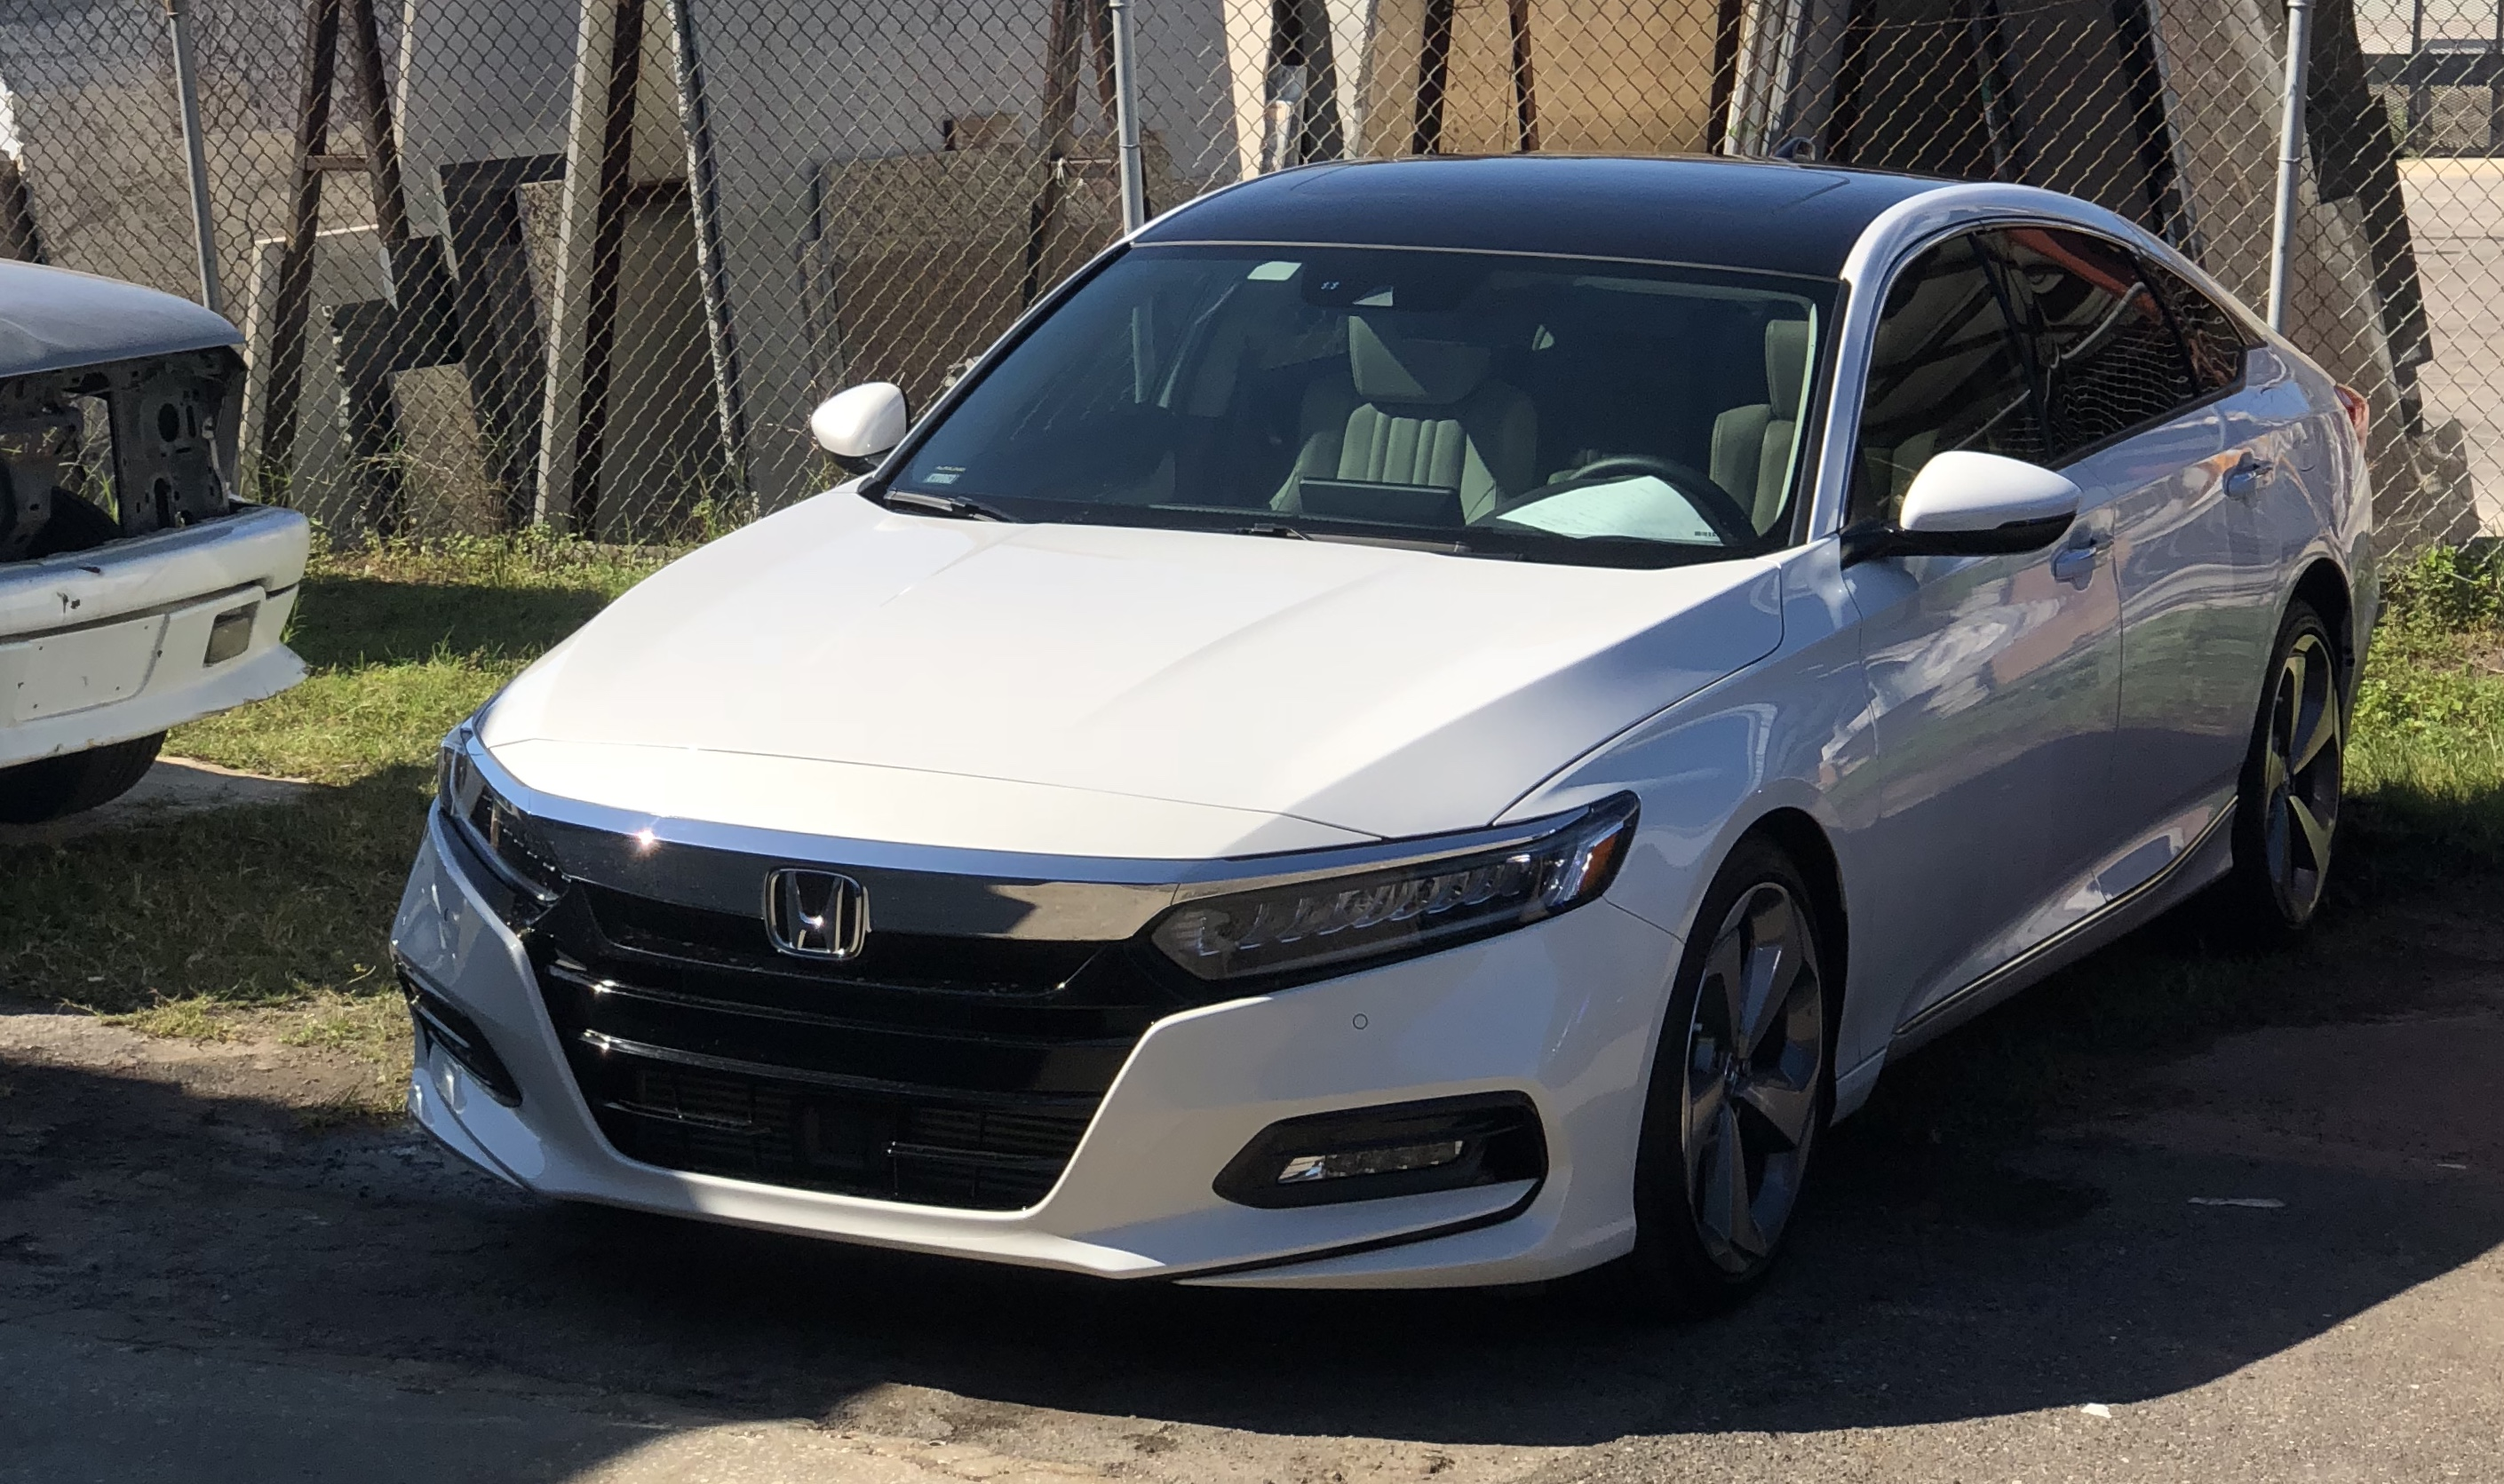 2018 Honda Accord Touring 2500 Down 1500 Flexcash Share A Deal Leasehackr Forum